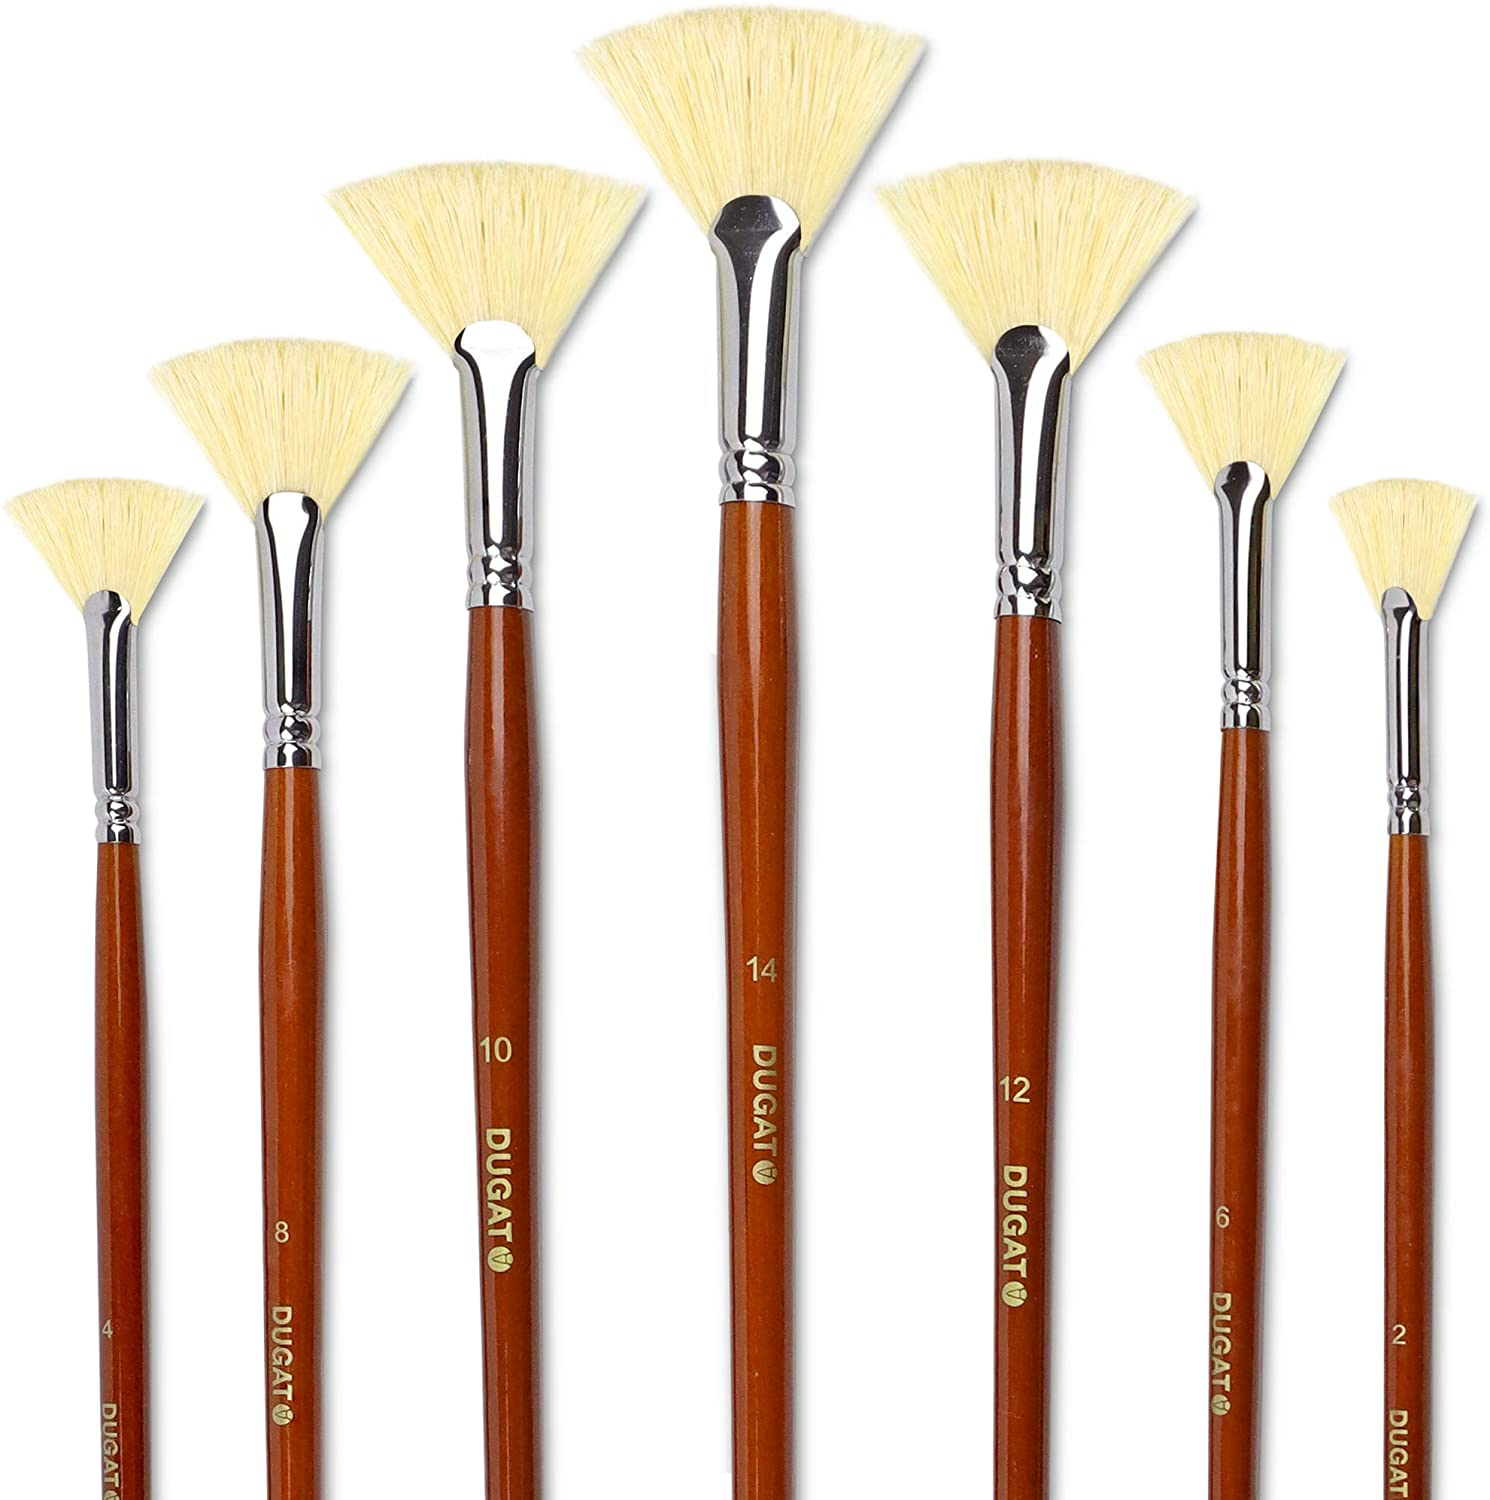 DUGATO Artist Fan Paint Brush Set of 7, White Hog Bristle Natural Hair Anti-Shedding Brush Tips, Long Wooden Handle for Comfortable Holding, Great for Acrylic Watercolor Oil Painting